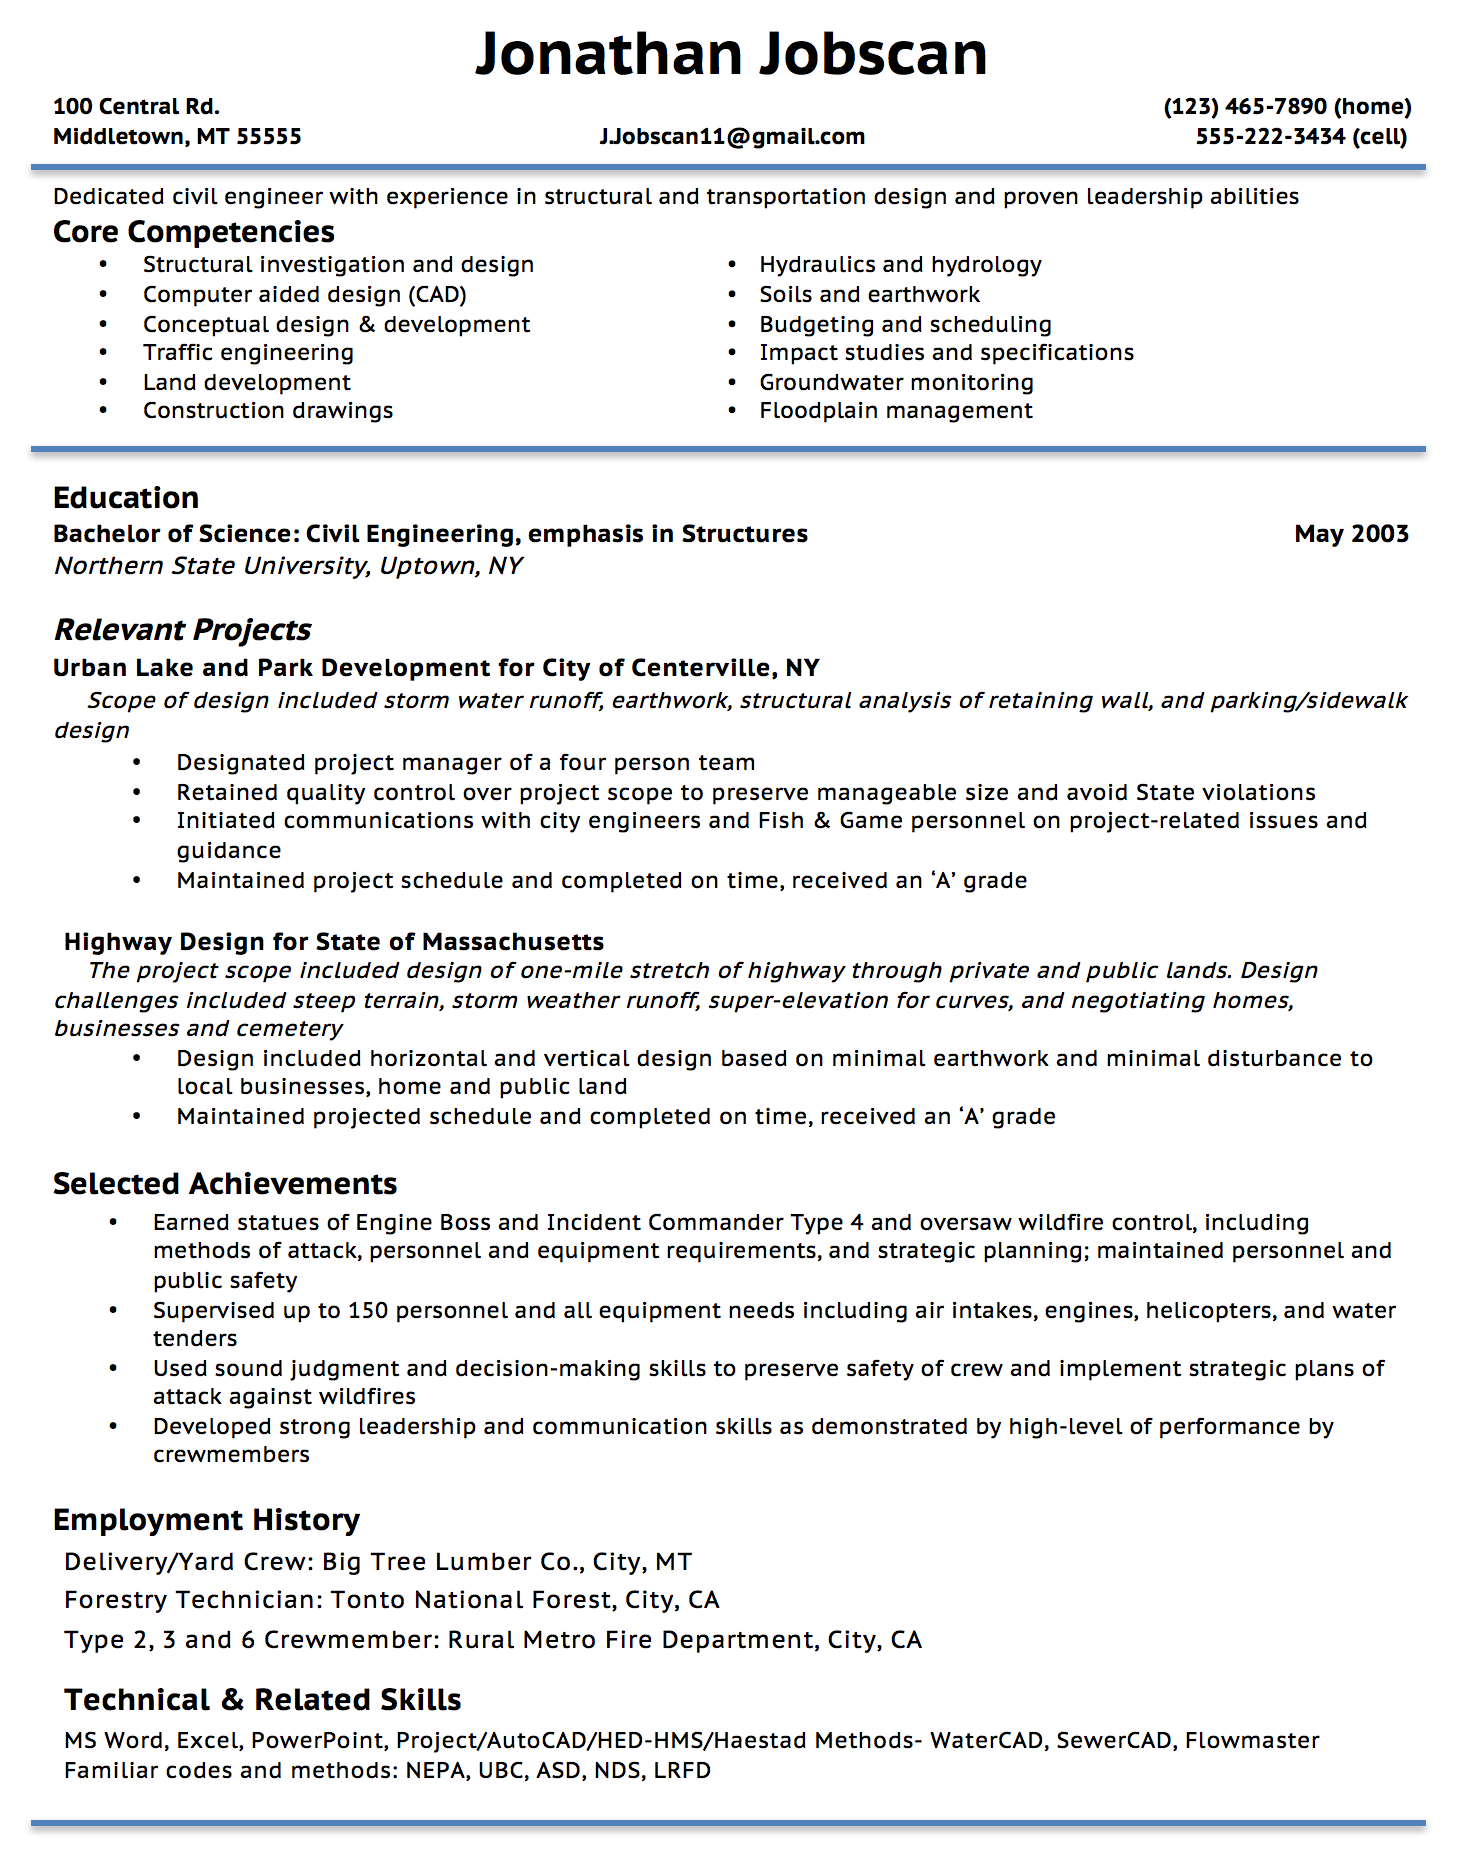 Opposenewapstandardsus  Pleasing Resume Writing Guide  Jobscan With Licious Example Of A Functional Resume Format With Divine Resume For Accountant Also Resume Building Worksheet In Addition Certifications For Resume And Housekeeping Resume Examples As Well As Photographer Resume Template Additionally Accountant Resume Samples From Jobscanco With Opposenewapstandardsus  Licious Resume Writing Guide  Jobscan With Divine Example Of A Functional Resume Format And Pleasing Resume For Accountant Also Resume Building Worksheet In Addition Certifications For Resume From Jobscanco